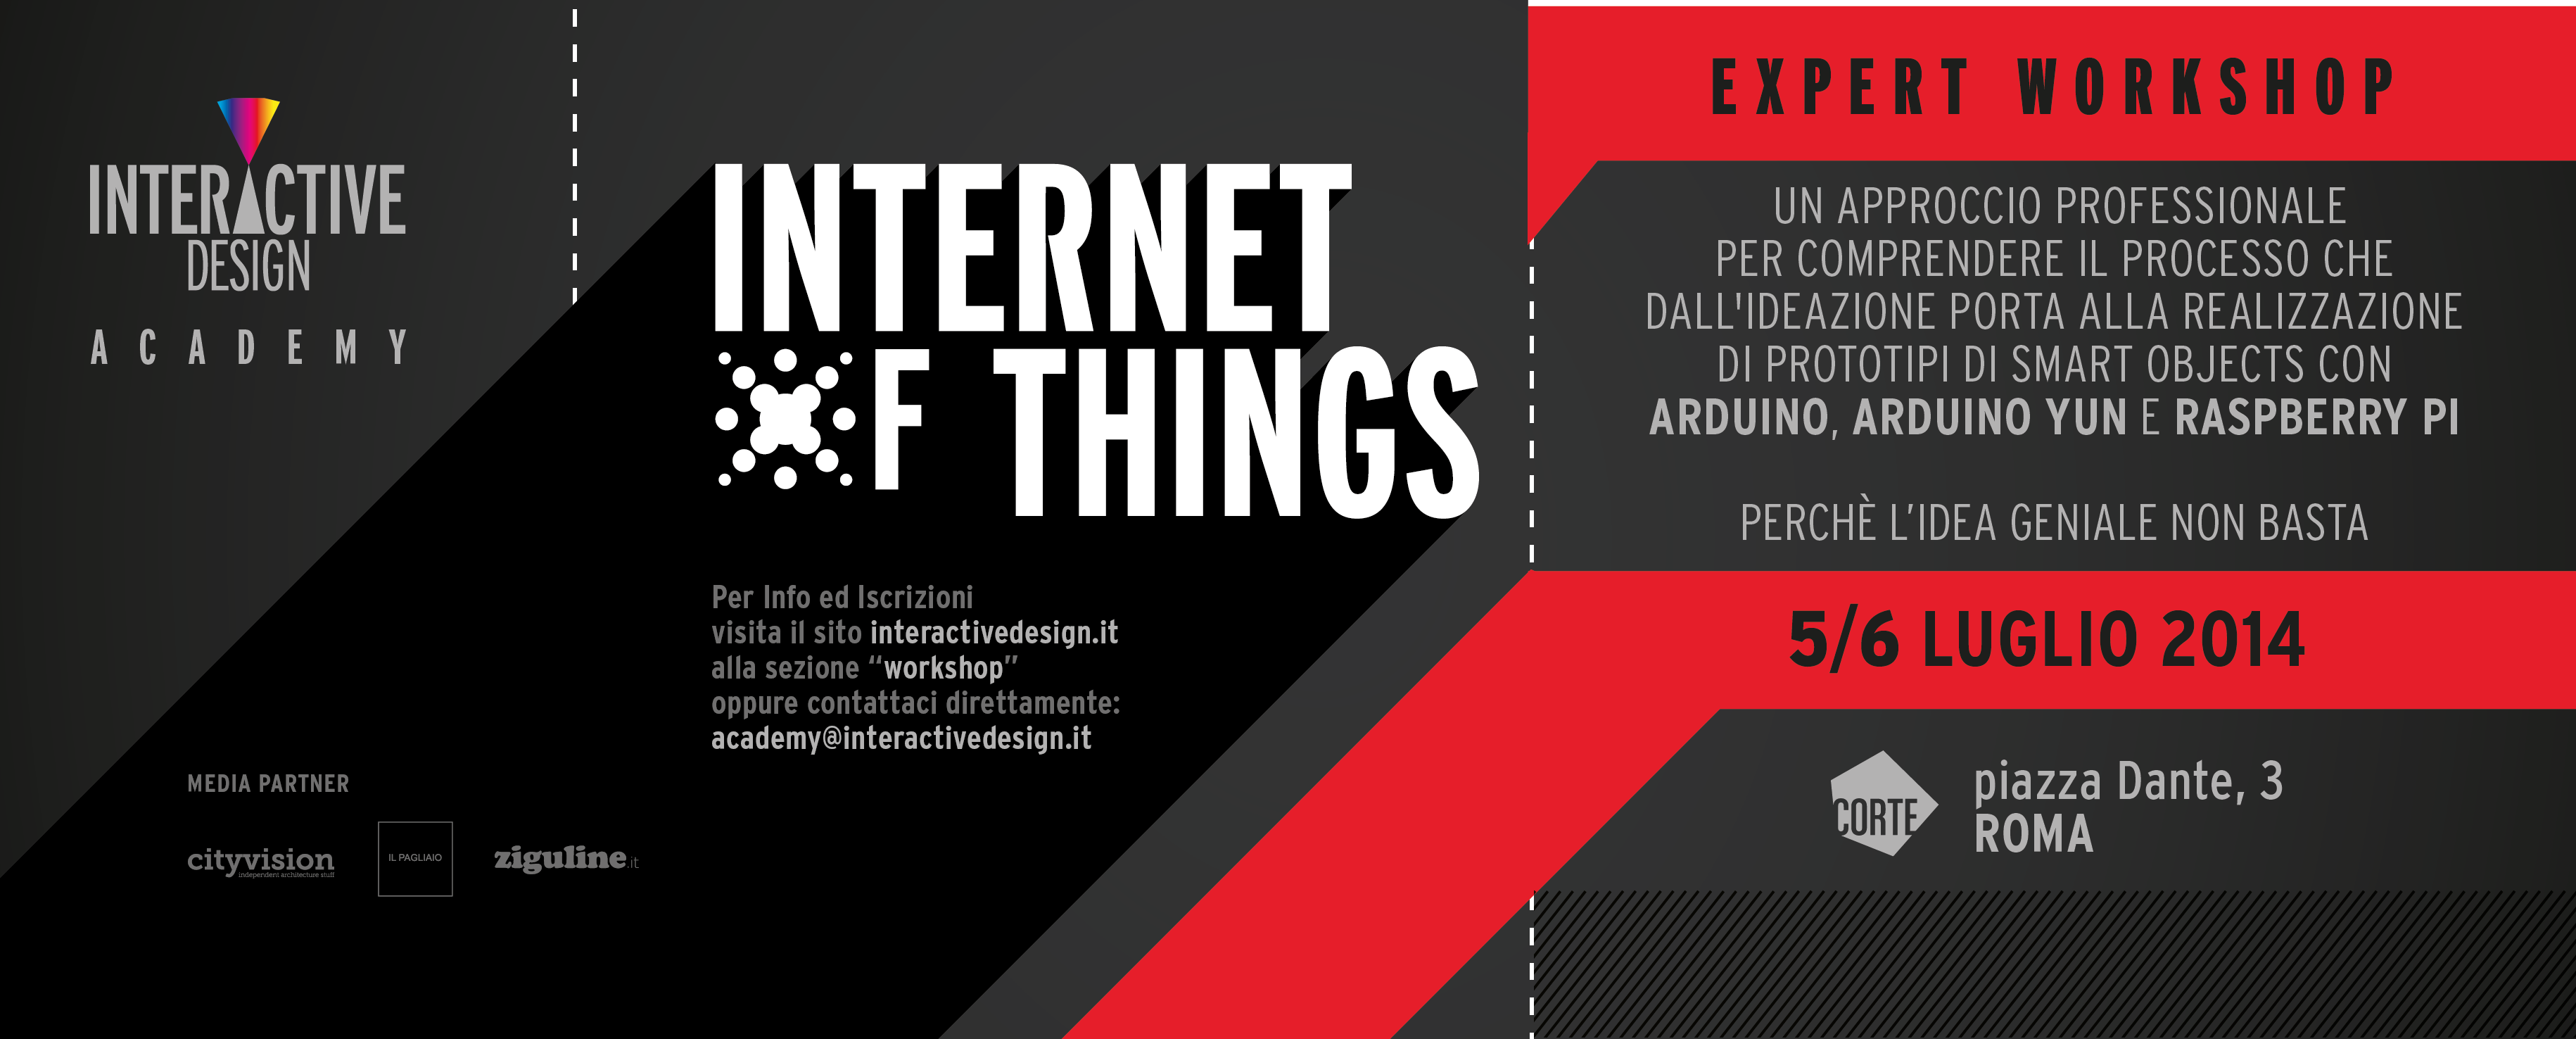 INTERNET OF THINGS - Expert Workshop